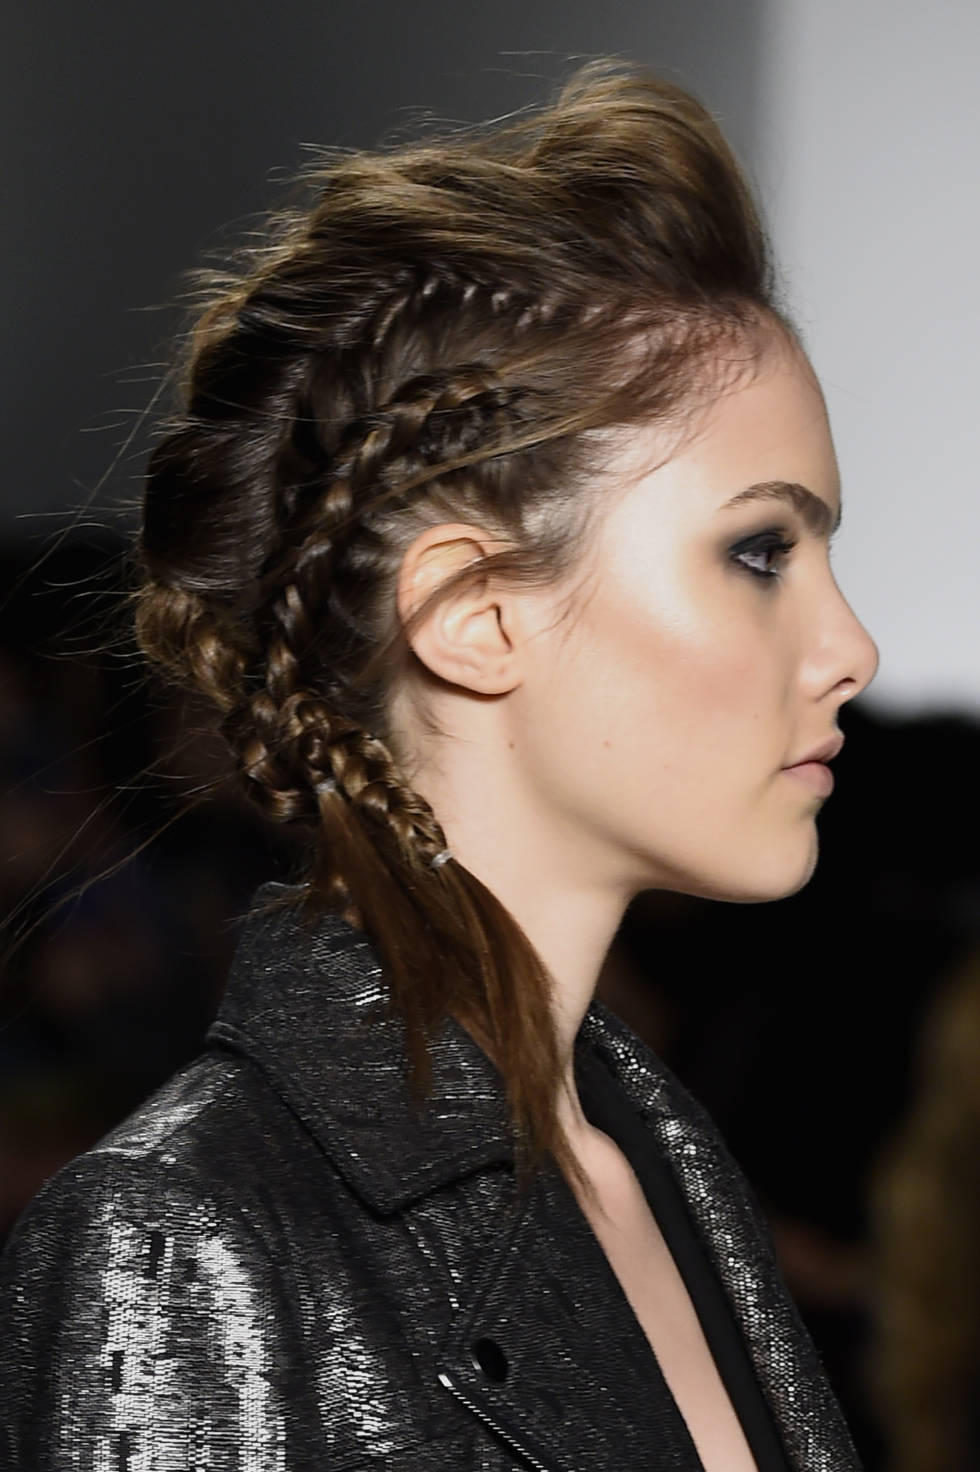 Strange Spring Summer 2015 Hair And Makeup Trends Hairstyles For Women Draintrainus